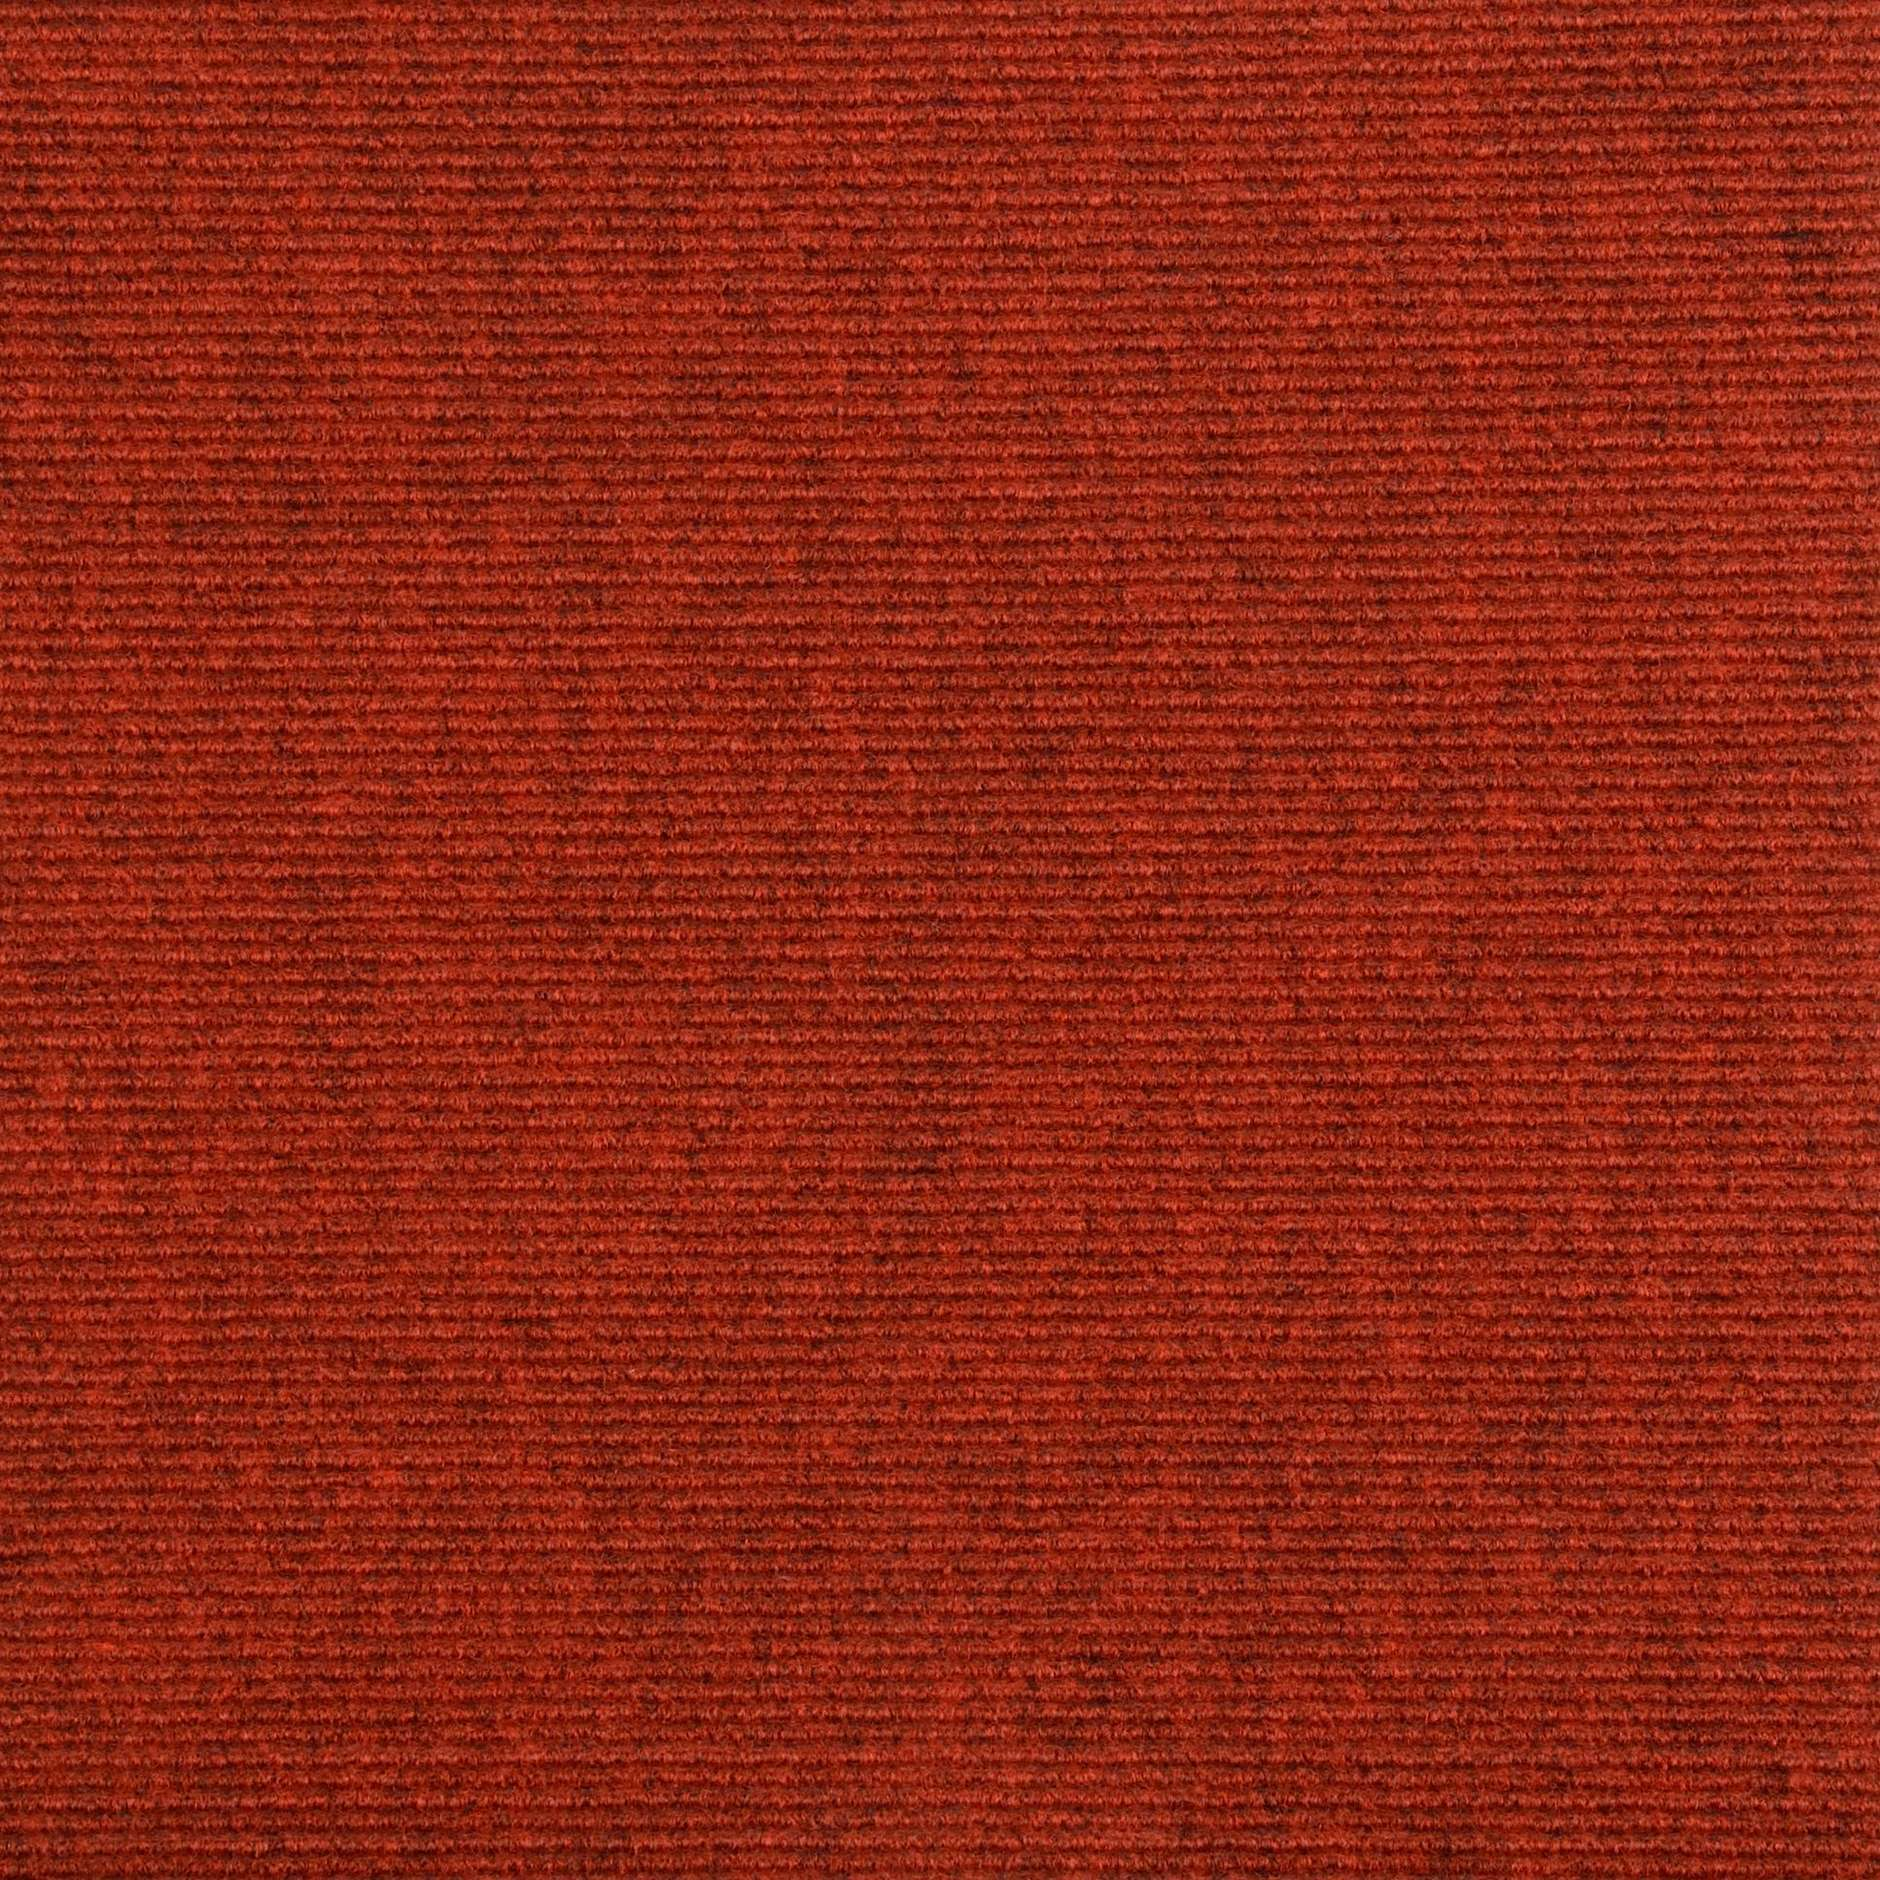 Burmatex Academy Carpet Tiles Available In 32 Designs